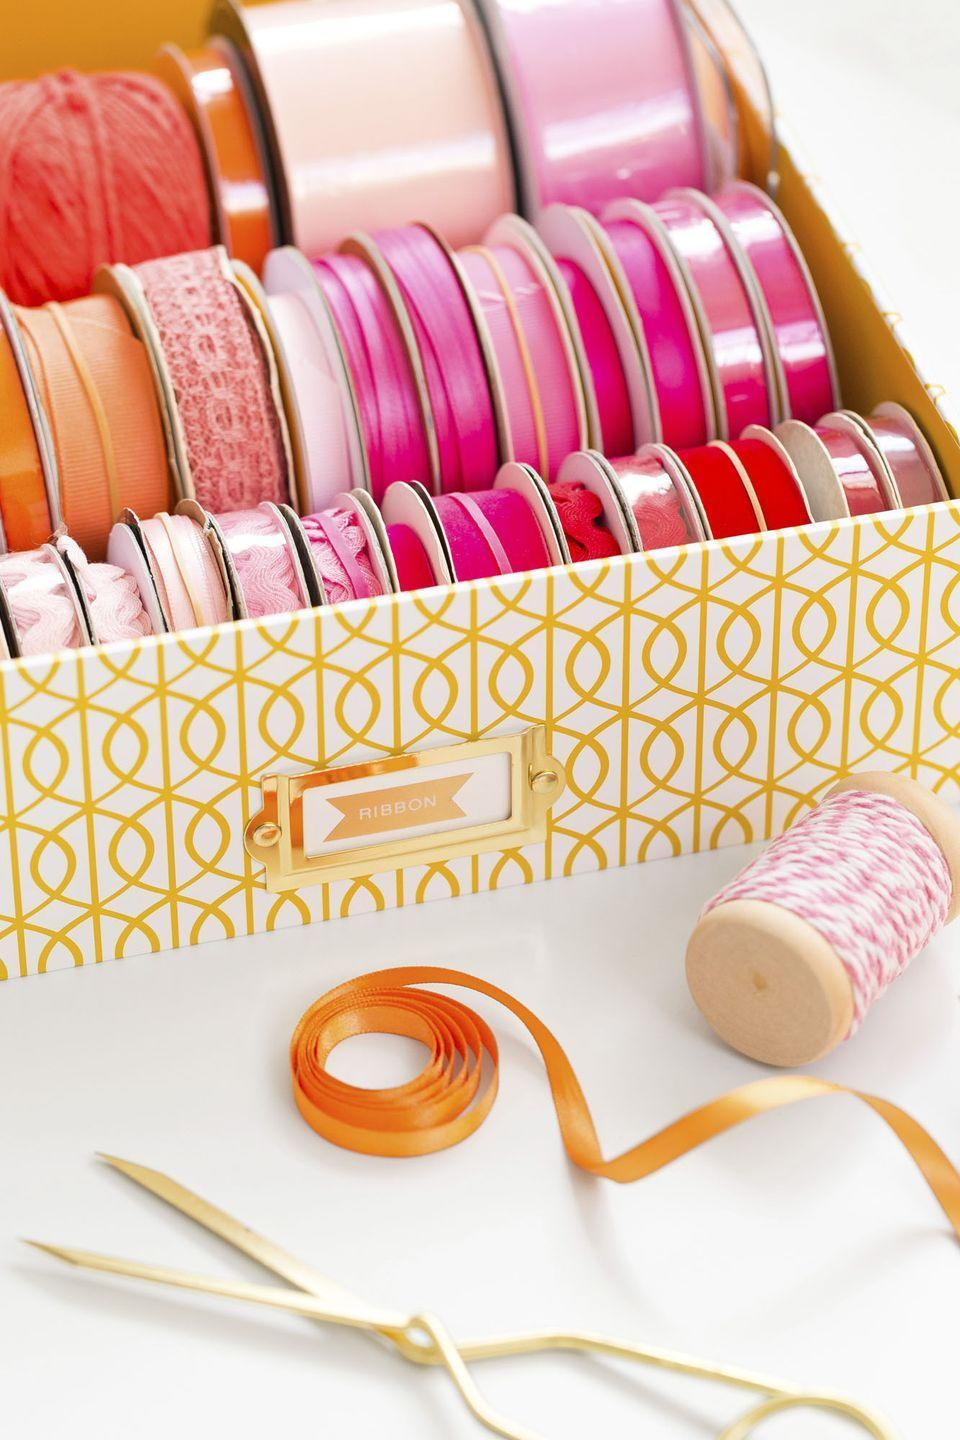 """<p>Unless you're an avid crafter, you probably don't bust out your ribbon stash on the daily. Before <a href=""""https://www.goodhousekeeping.com/holidays/gift-ideas/tips/g1775/diy-holiday-gift-wrap/"""" rel=""""nofollow noopener"""" target=""""_blank"""" data-ylk=""""slk:gift giving season hits"""" class=""""link rapid-noclick-resp"""">gift giving season hits</a>, set up a portable (and pretty!) ribbon station by placing the color-coordinated spools in a shallow box. When it comes to wrap, you can shop through your stash to find what you need. </p><p><a class=""""link rapid-noclick-resp"""" href=""""https://www.amazon.com/PHOTO-STORAGE-BOXES-HOLDS-PHOTOS/dp/B003WSV1RI/?tag=syn-yahoo-20&ascsubtag=%5Bartid%7C10063.g.36459111%5Bsrc%7Cyahoo-us"""" rel=""""nofollow noopener"""" target=""""_blank"""" data-ylk=""""slk:SHOP STORAGE BOXES"""">SHOP STORAGE BOXES</a> </p>"""